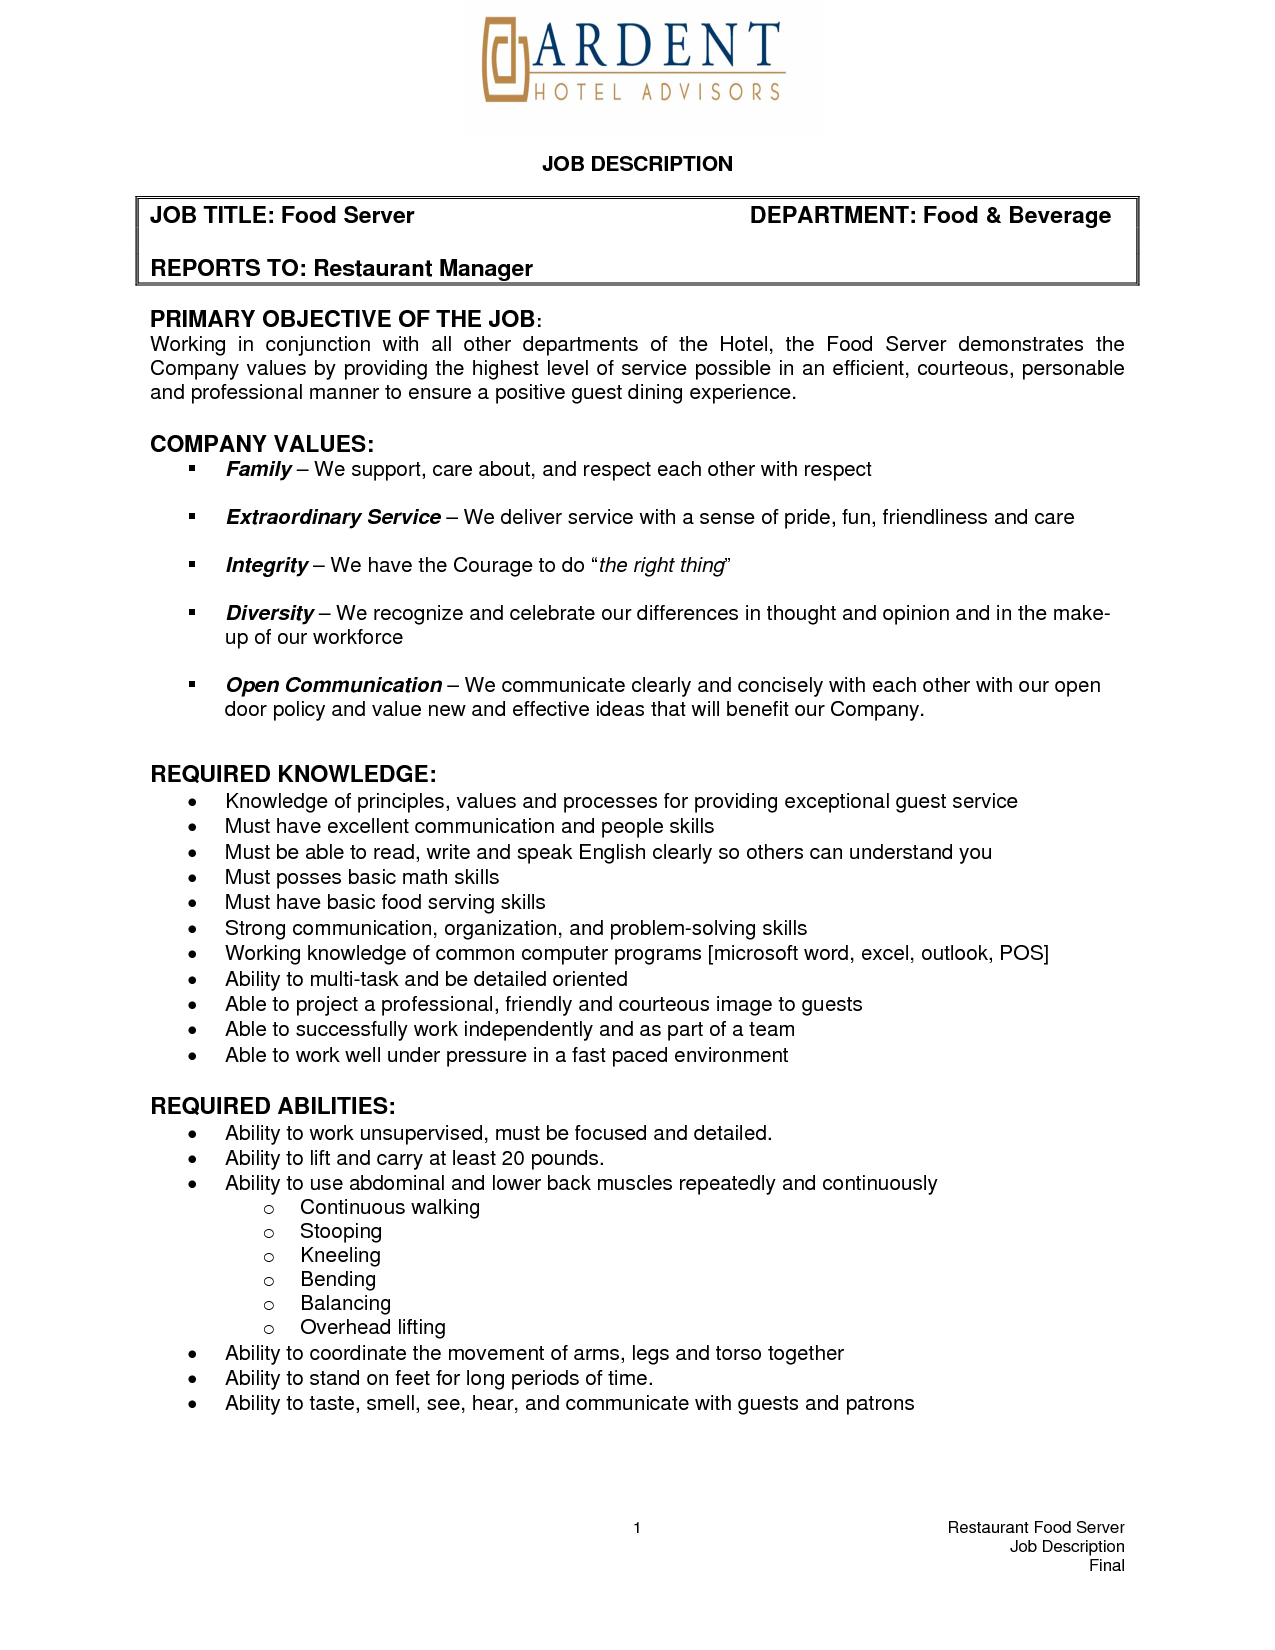 Server Skills Resume Alluring Banquet Server Resume Example  Httpwwwresumecareer Design Ideas